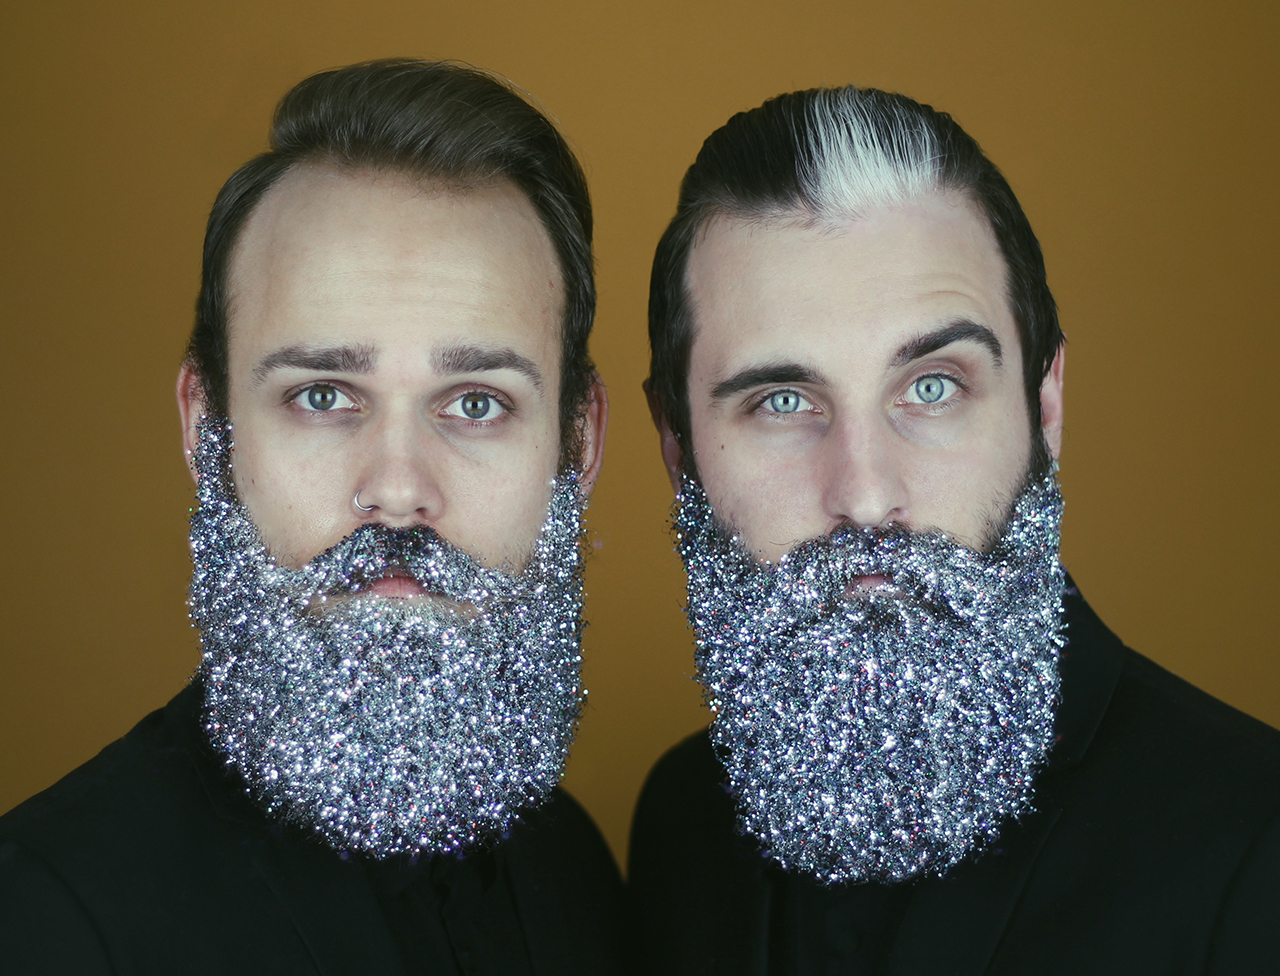 Photo © The Gay Beards.